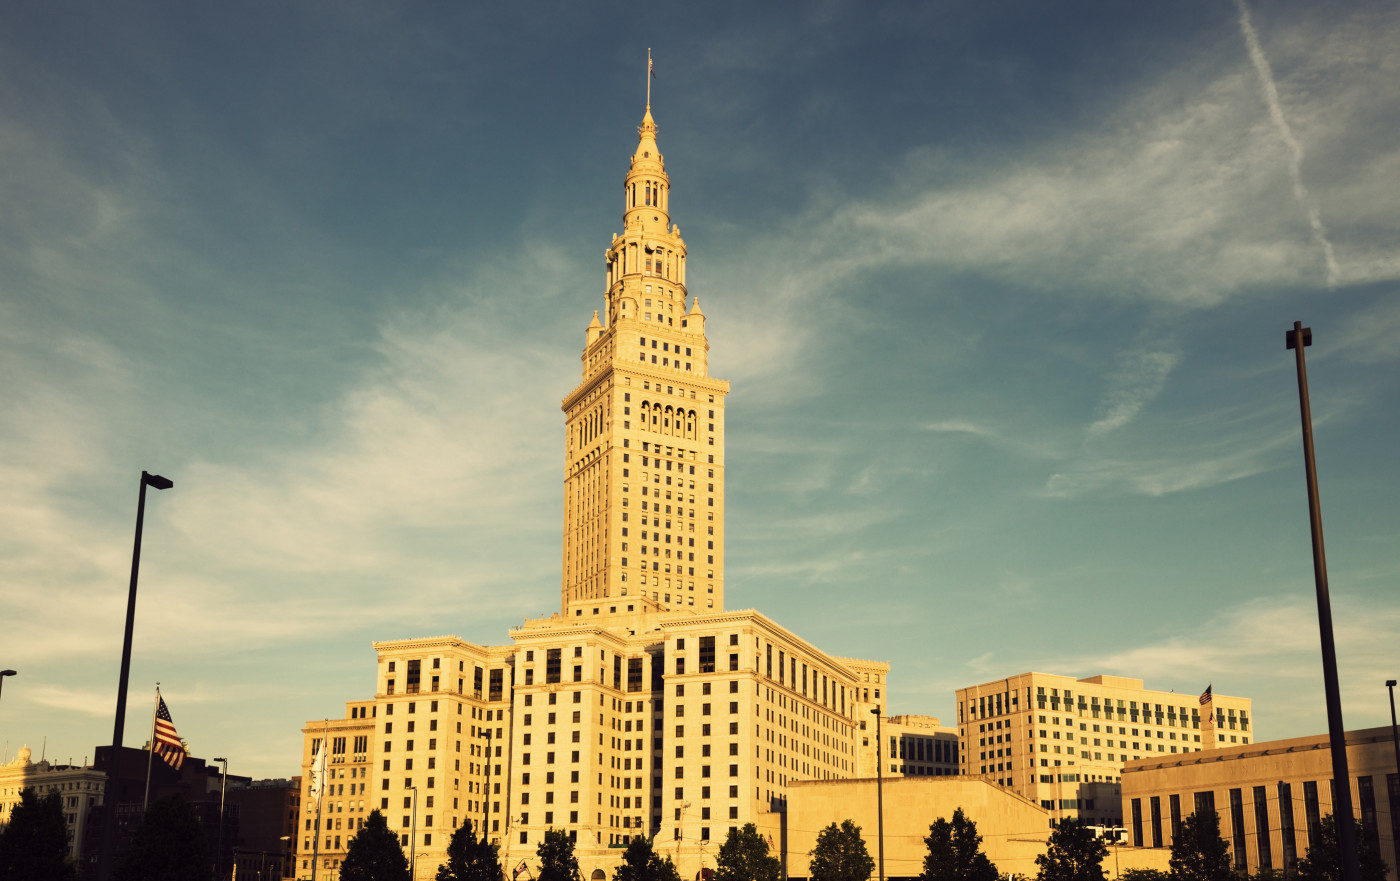 Terminal Tower in downtown of Cleveland